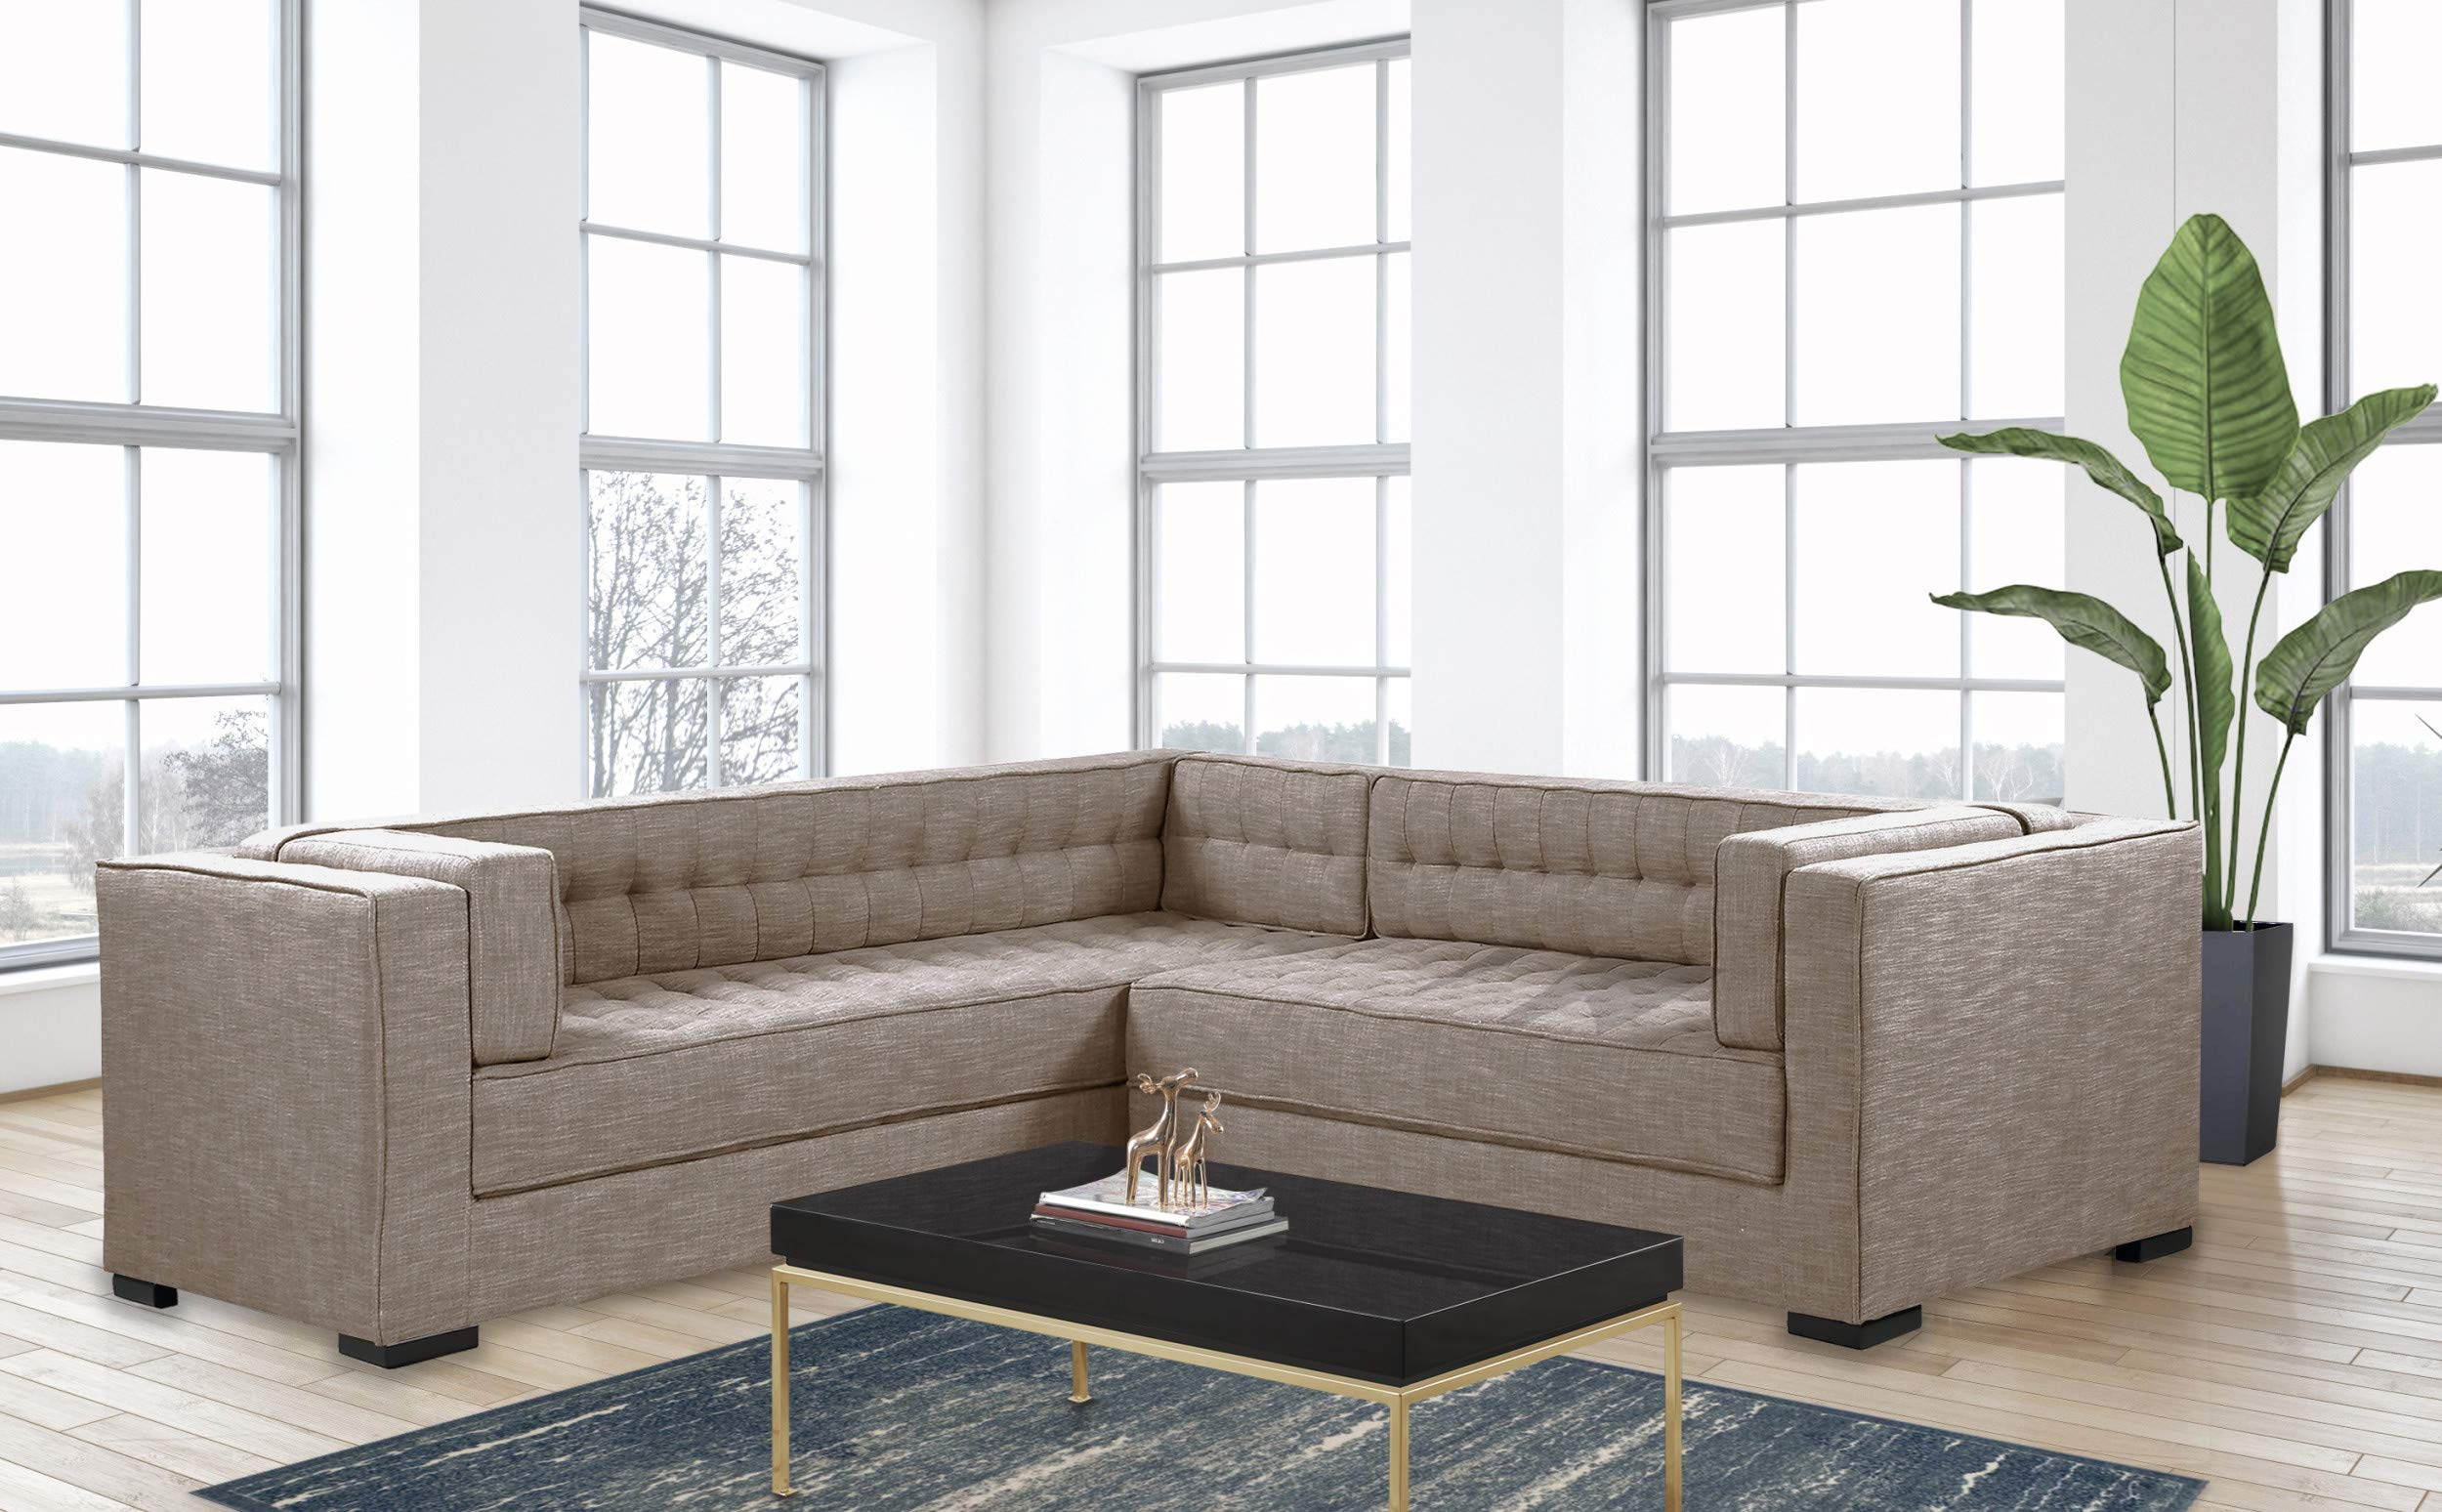 Iconic Home Lorenzo Right Facing Sectional Sofa L Shape Linen-Textured Upholstered Tufted Shelter Arm Design Espresso Finished Wood Legs Modern Transitional, Sand by Iconic Home